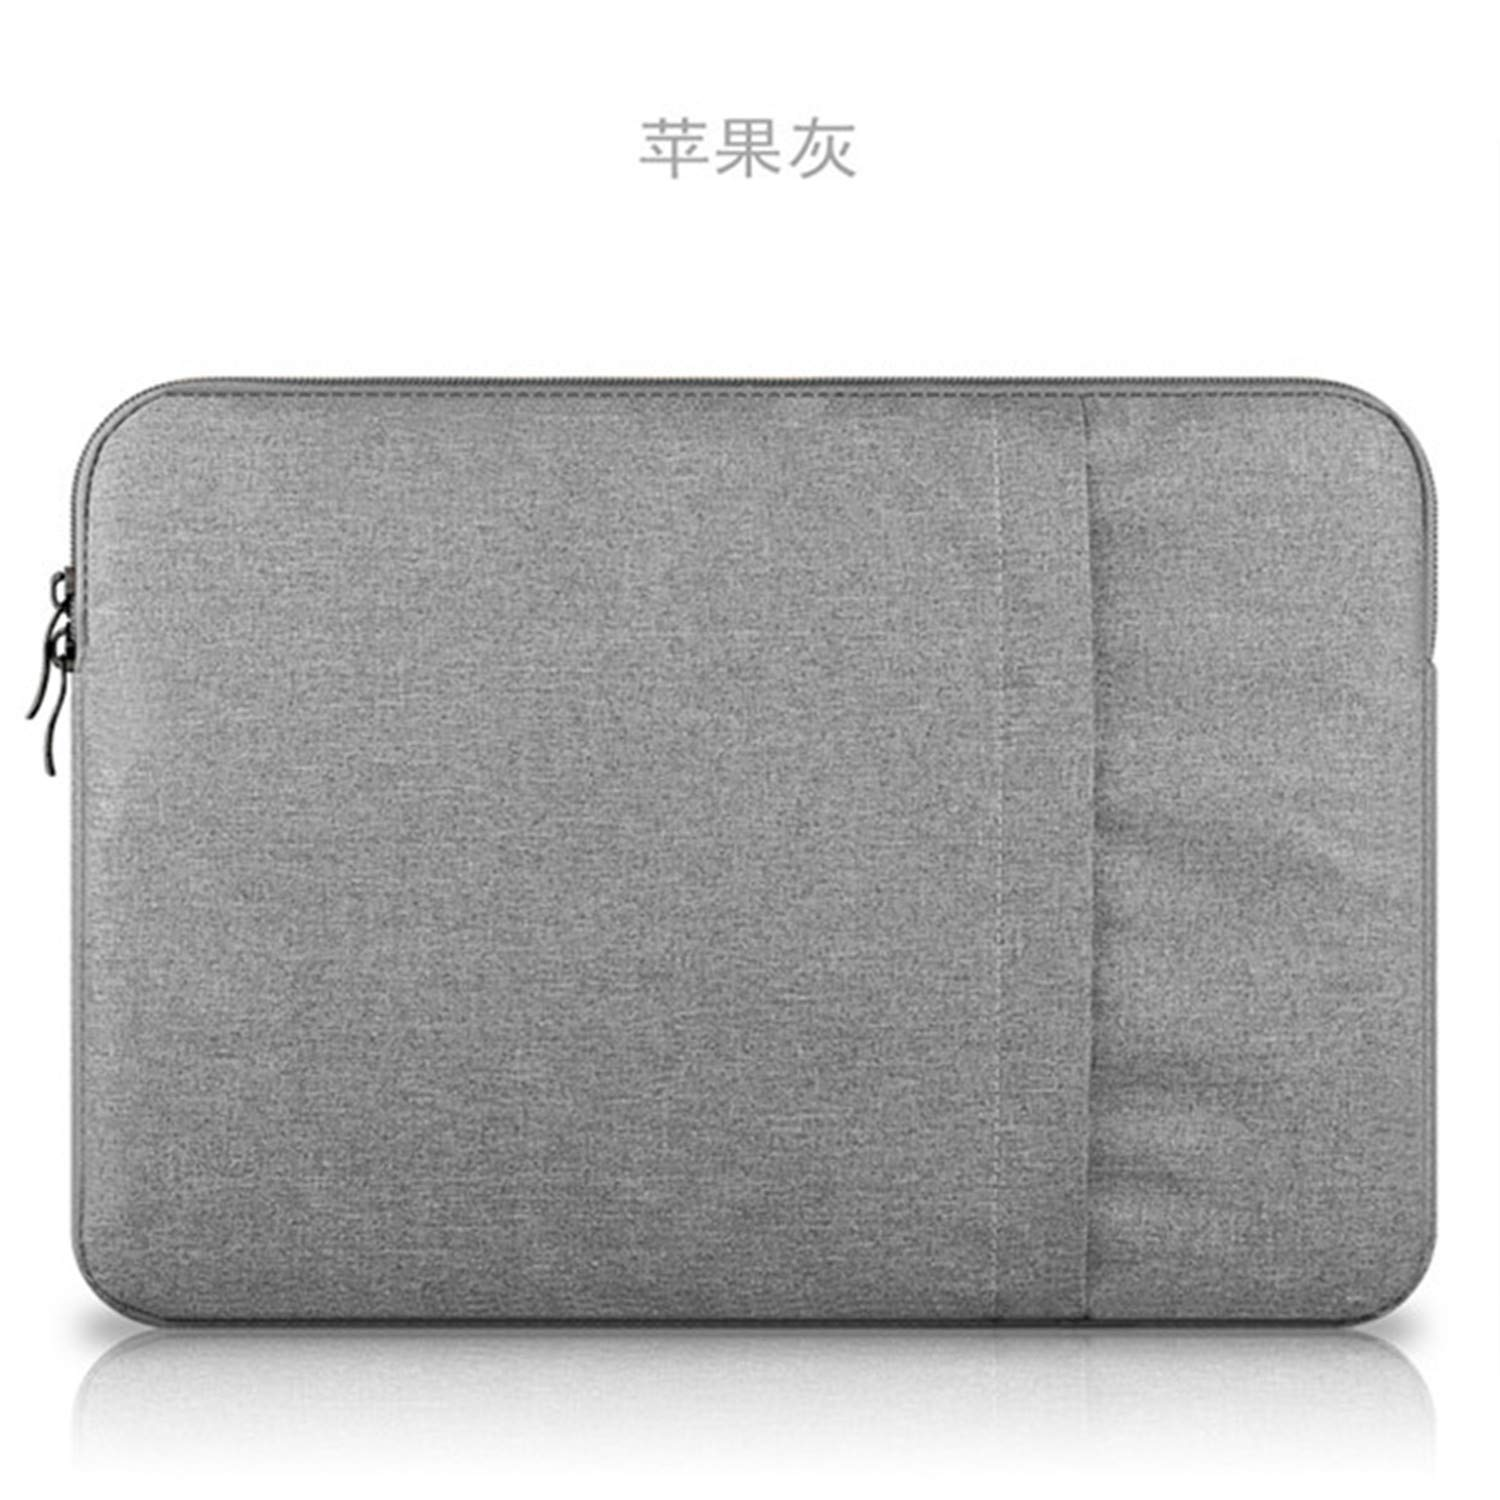 Amazon.com: Nylon Laptop Sleeve Bag Case for MacBook Air ...